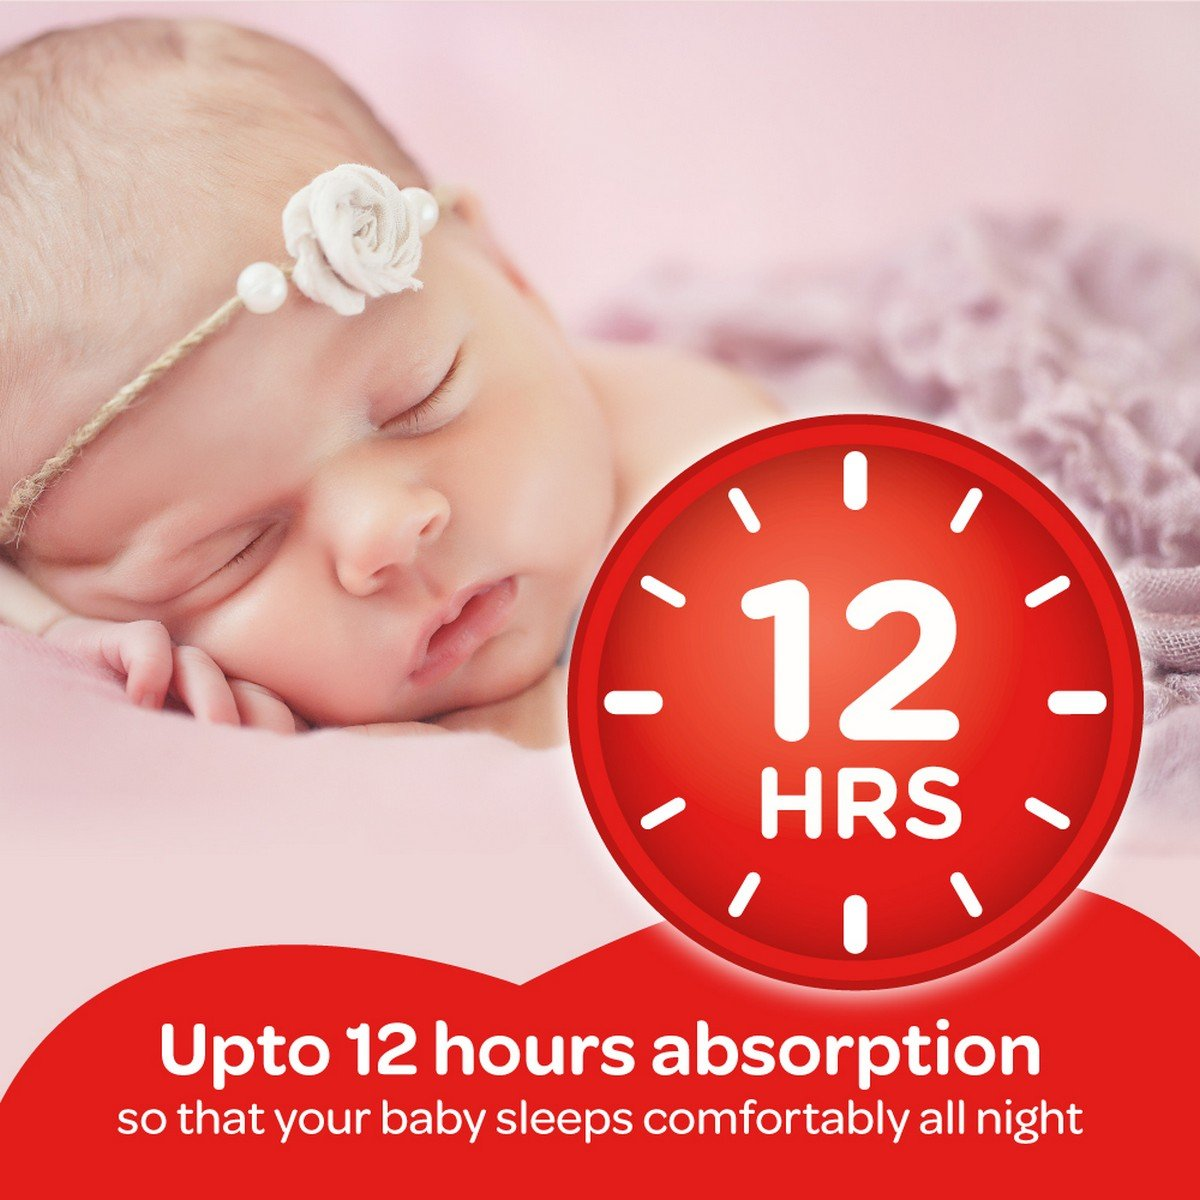 Buy Huggies Wonder Pants Medium Size Diapers 72 Count Online At Sweety Popok Bayi Comfort Gold Tape M 48 Low Prices In India